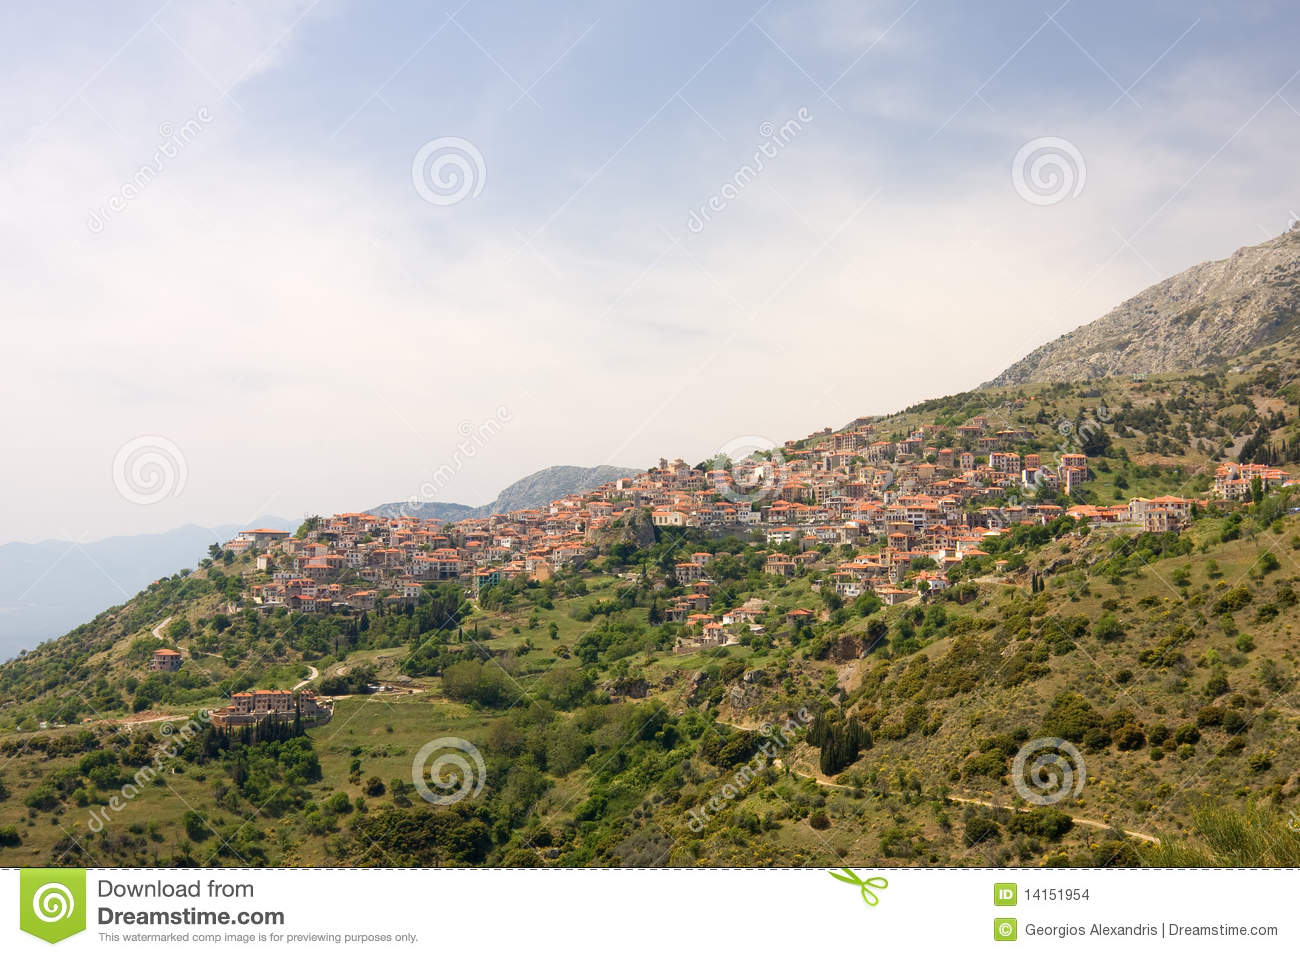 Arachova Greece  city images : Arachova, Greece, During Springtime Stock Images Image: 14151954